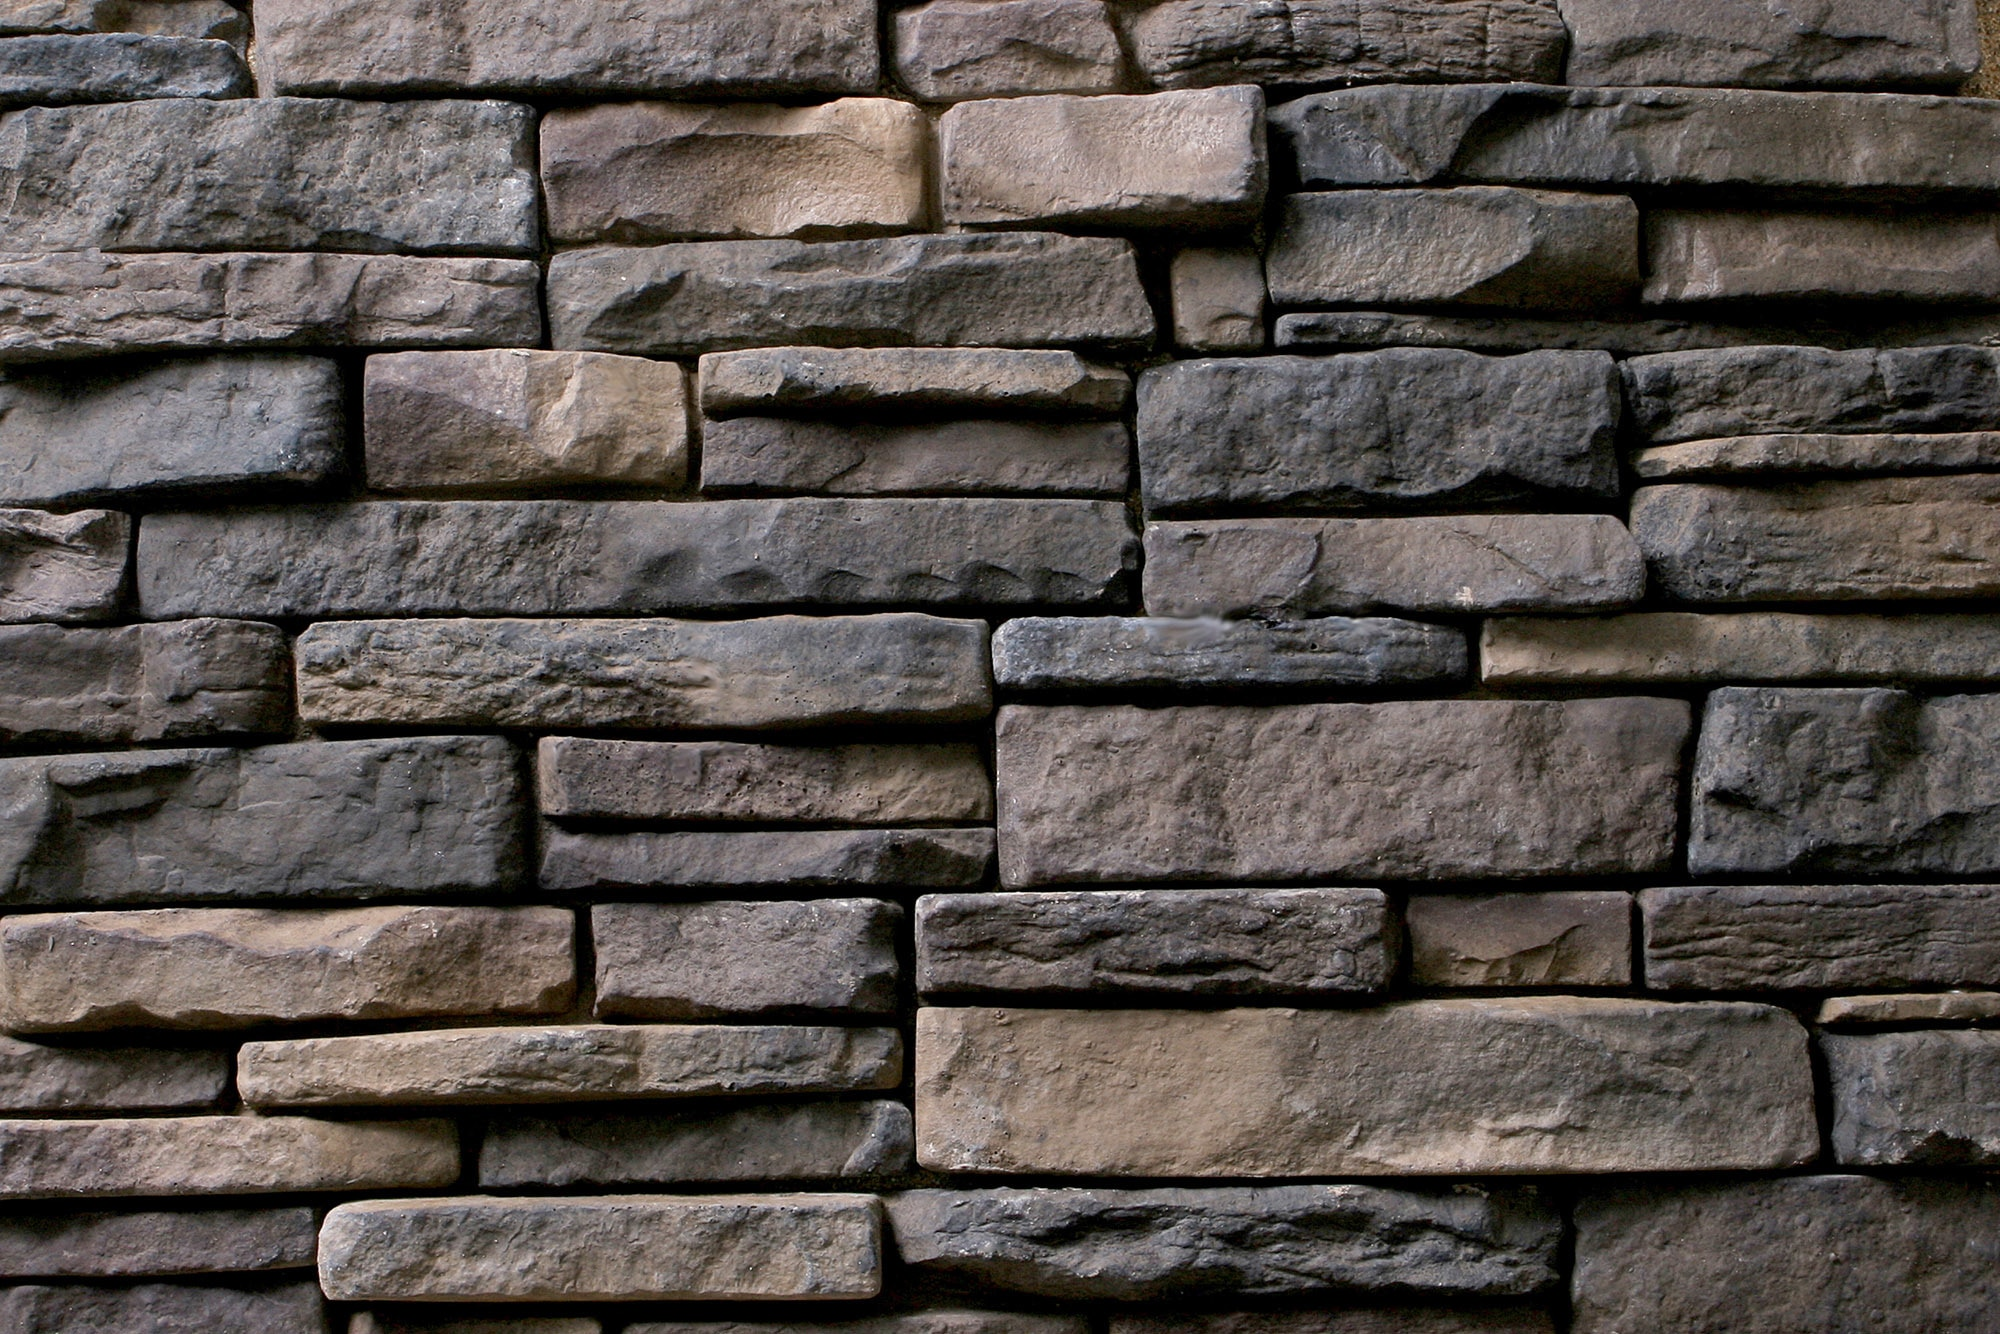 kodiak mountain stone manufactured stone veneer ready